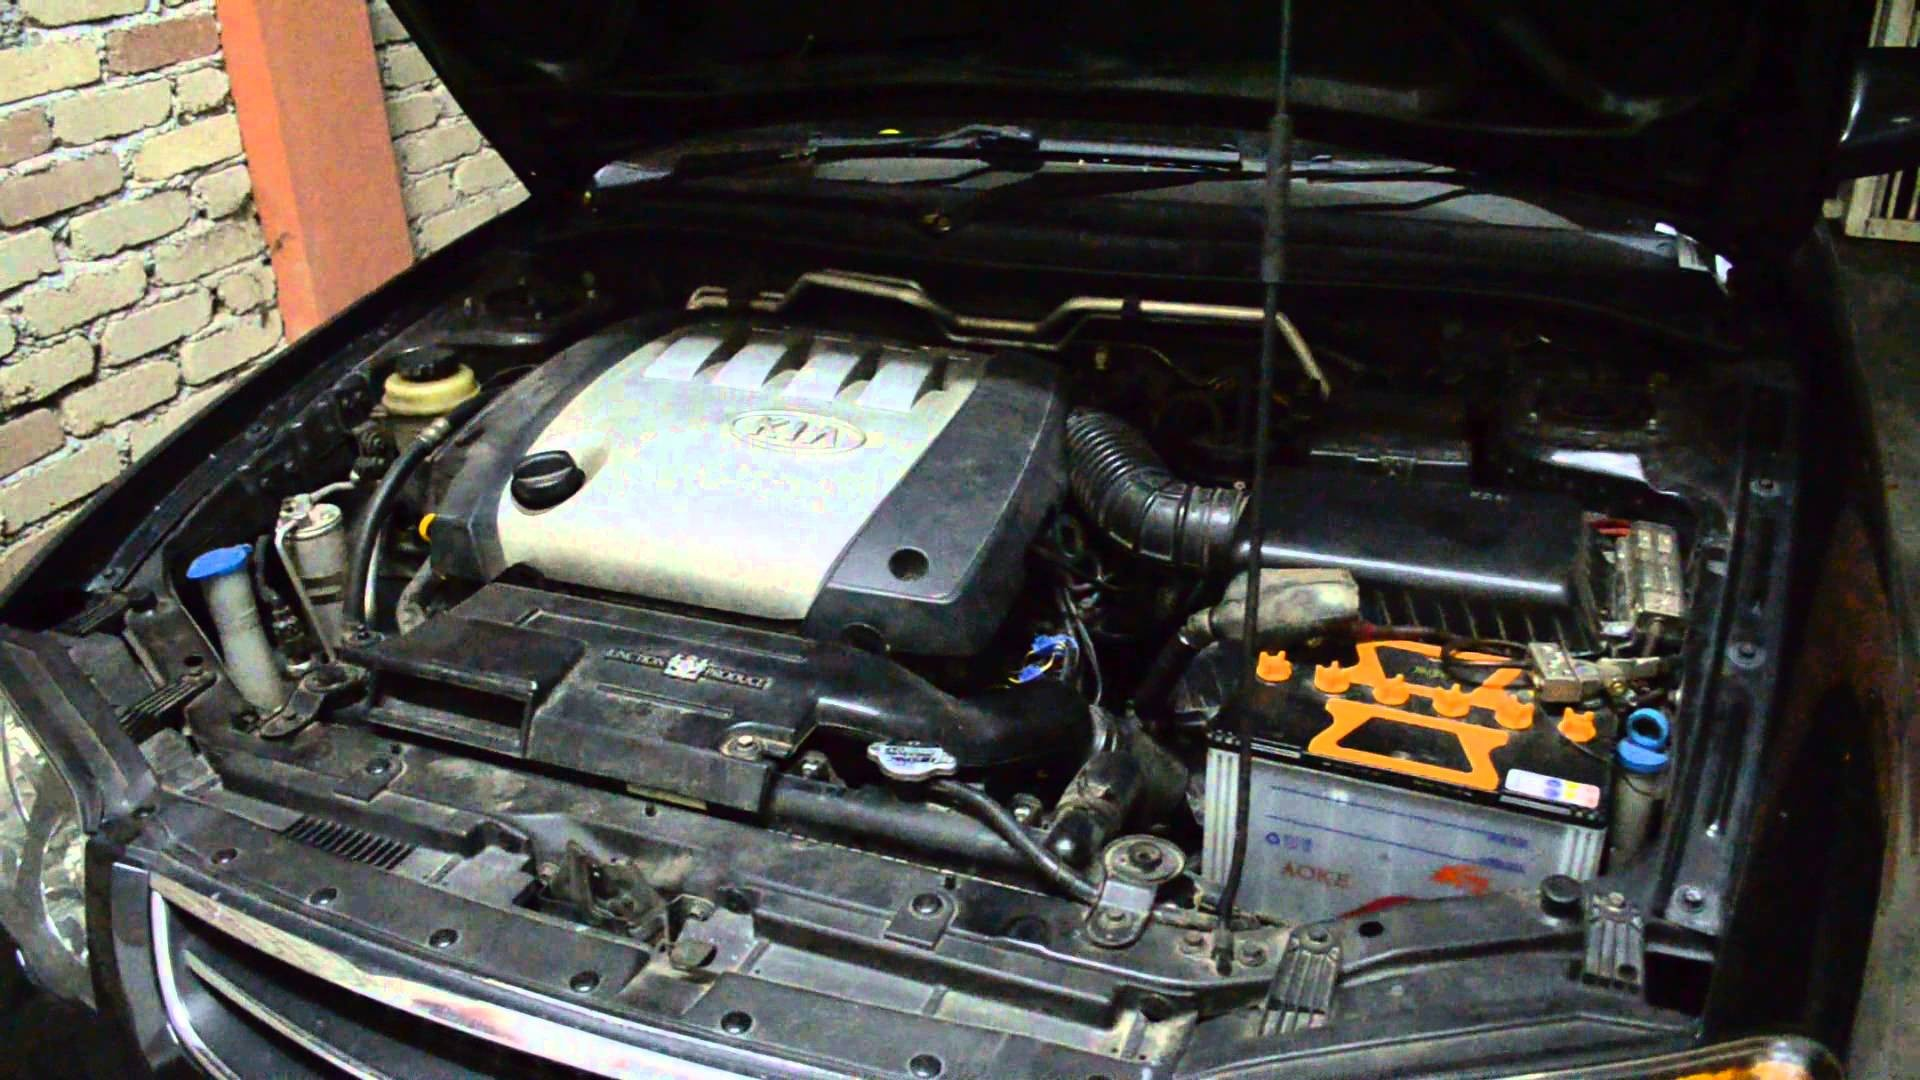 hight resolution of 2003 kia spectra engine diagram kia spectra 2003 ignition coil spoil of 2003 kia spectra engine